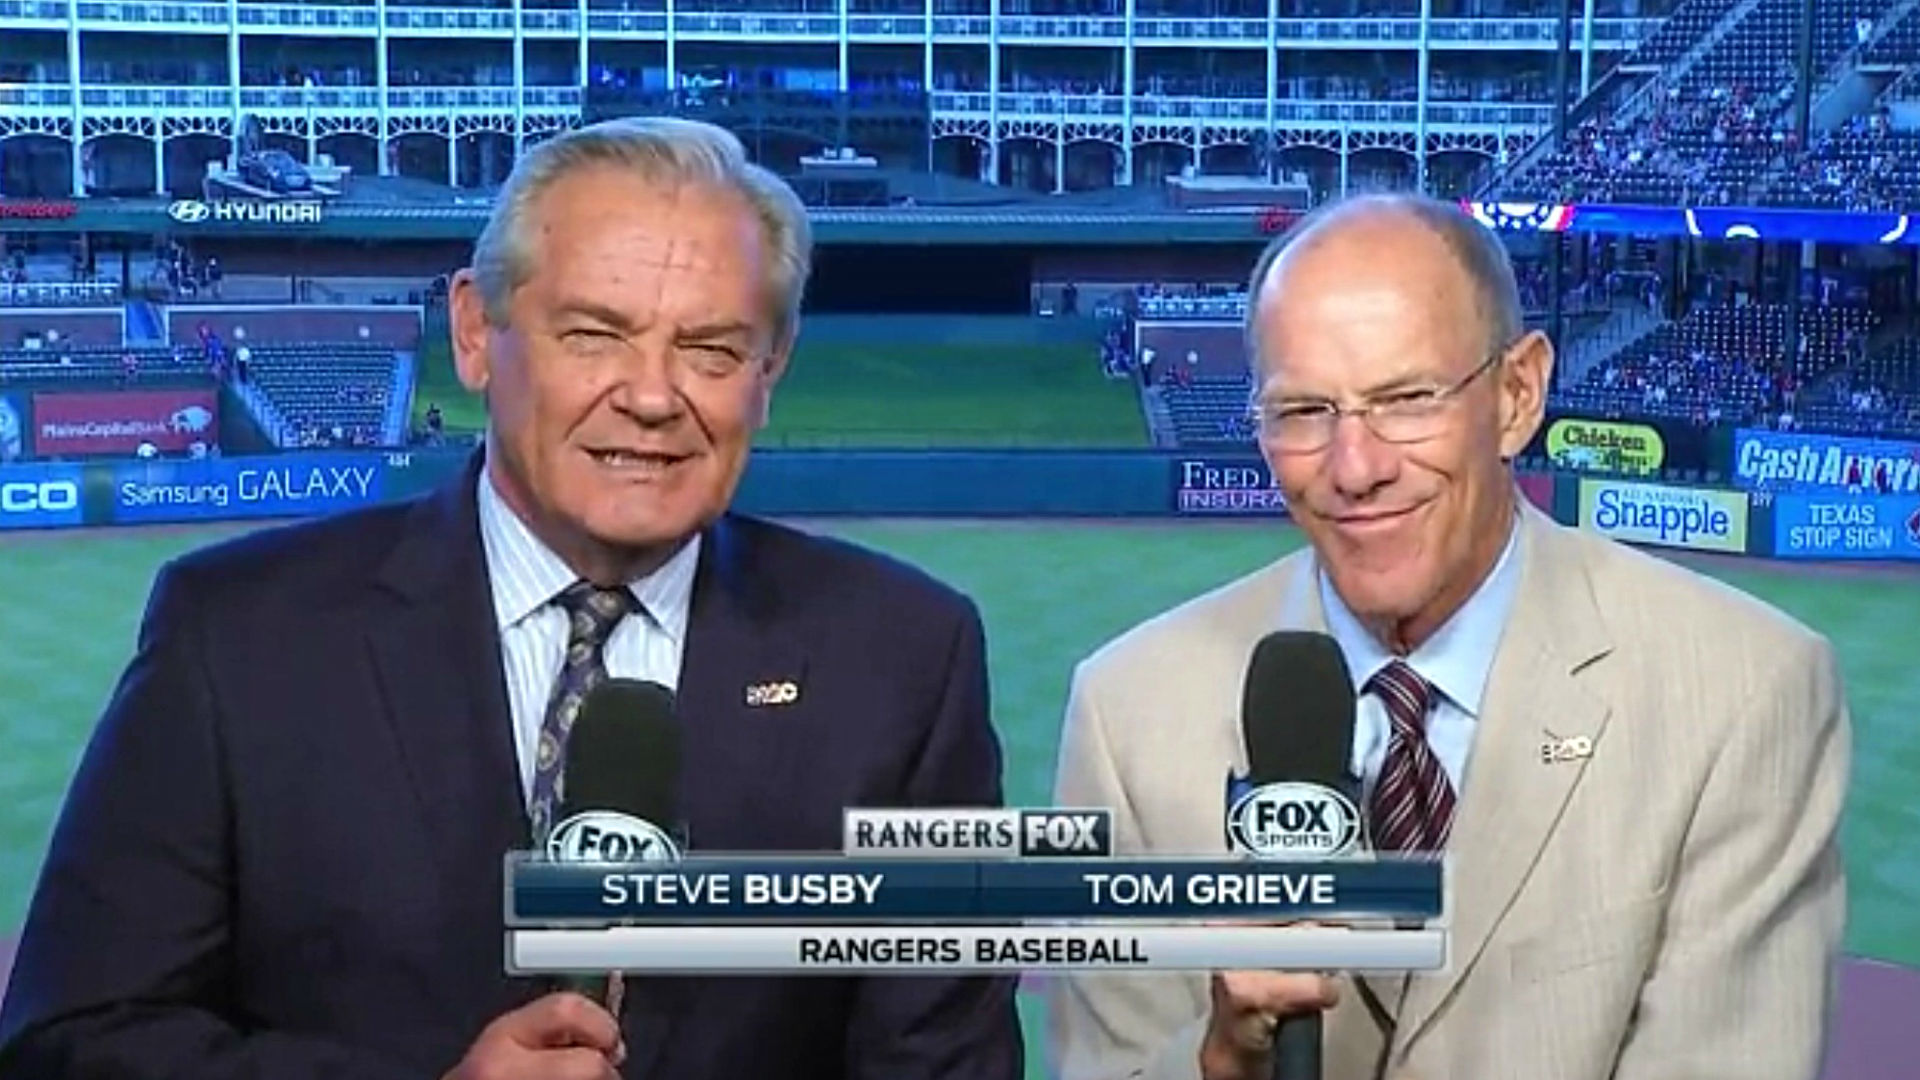 Rangers Broadcast Busby Buzzes Along Ok But Analysis Is Grieve Ous Sporting News